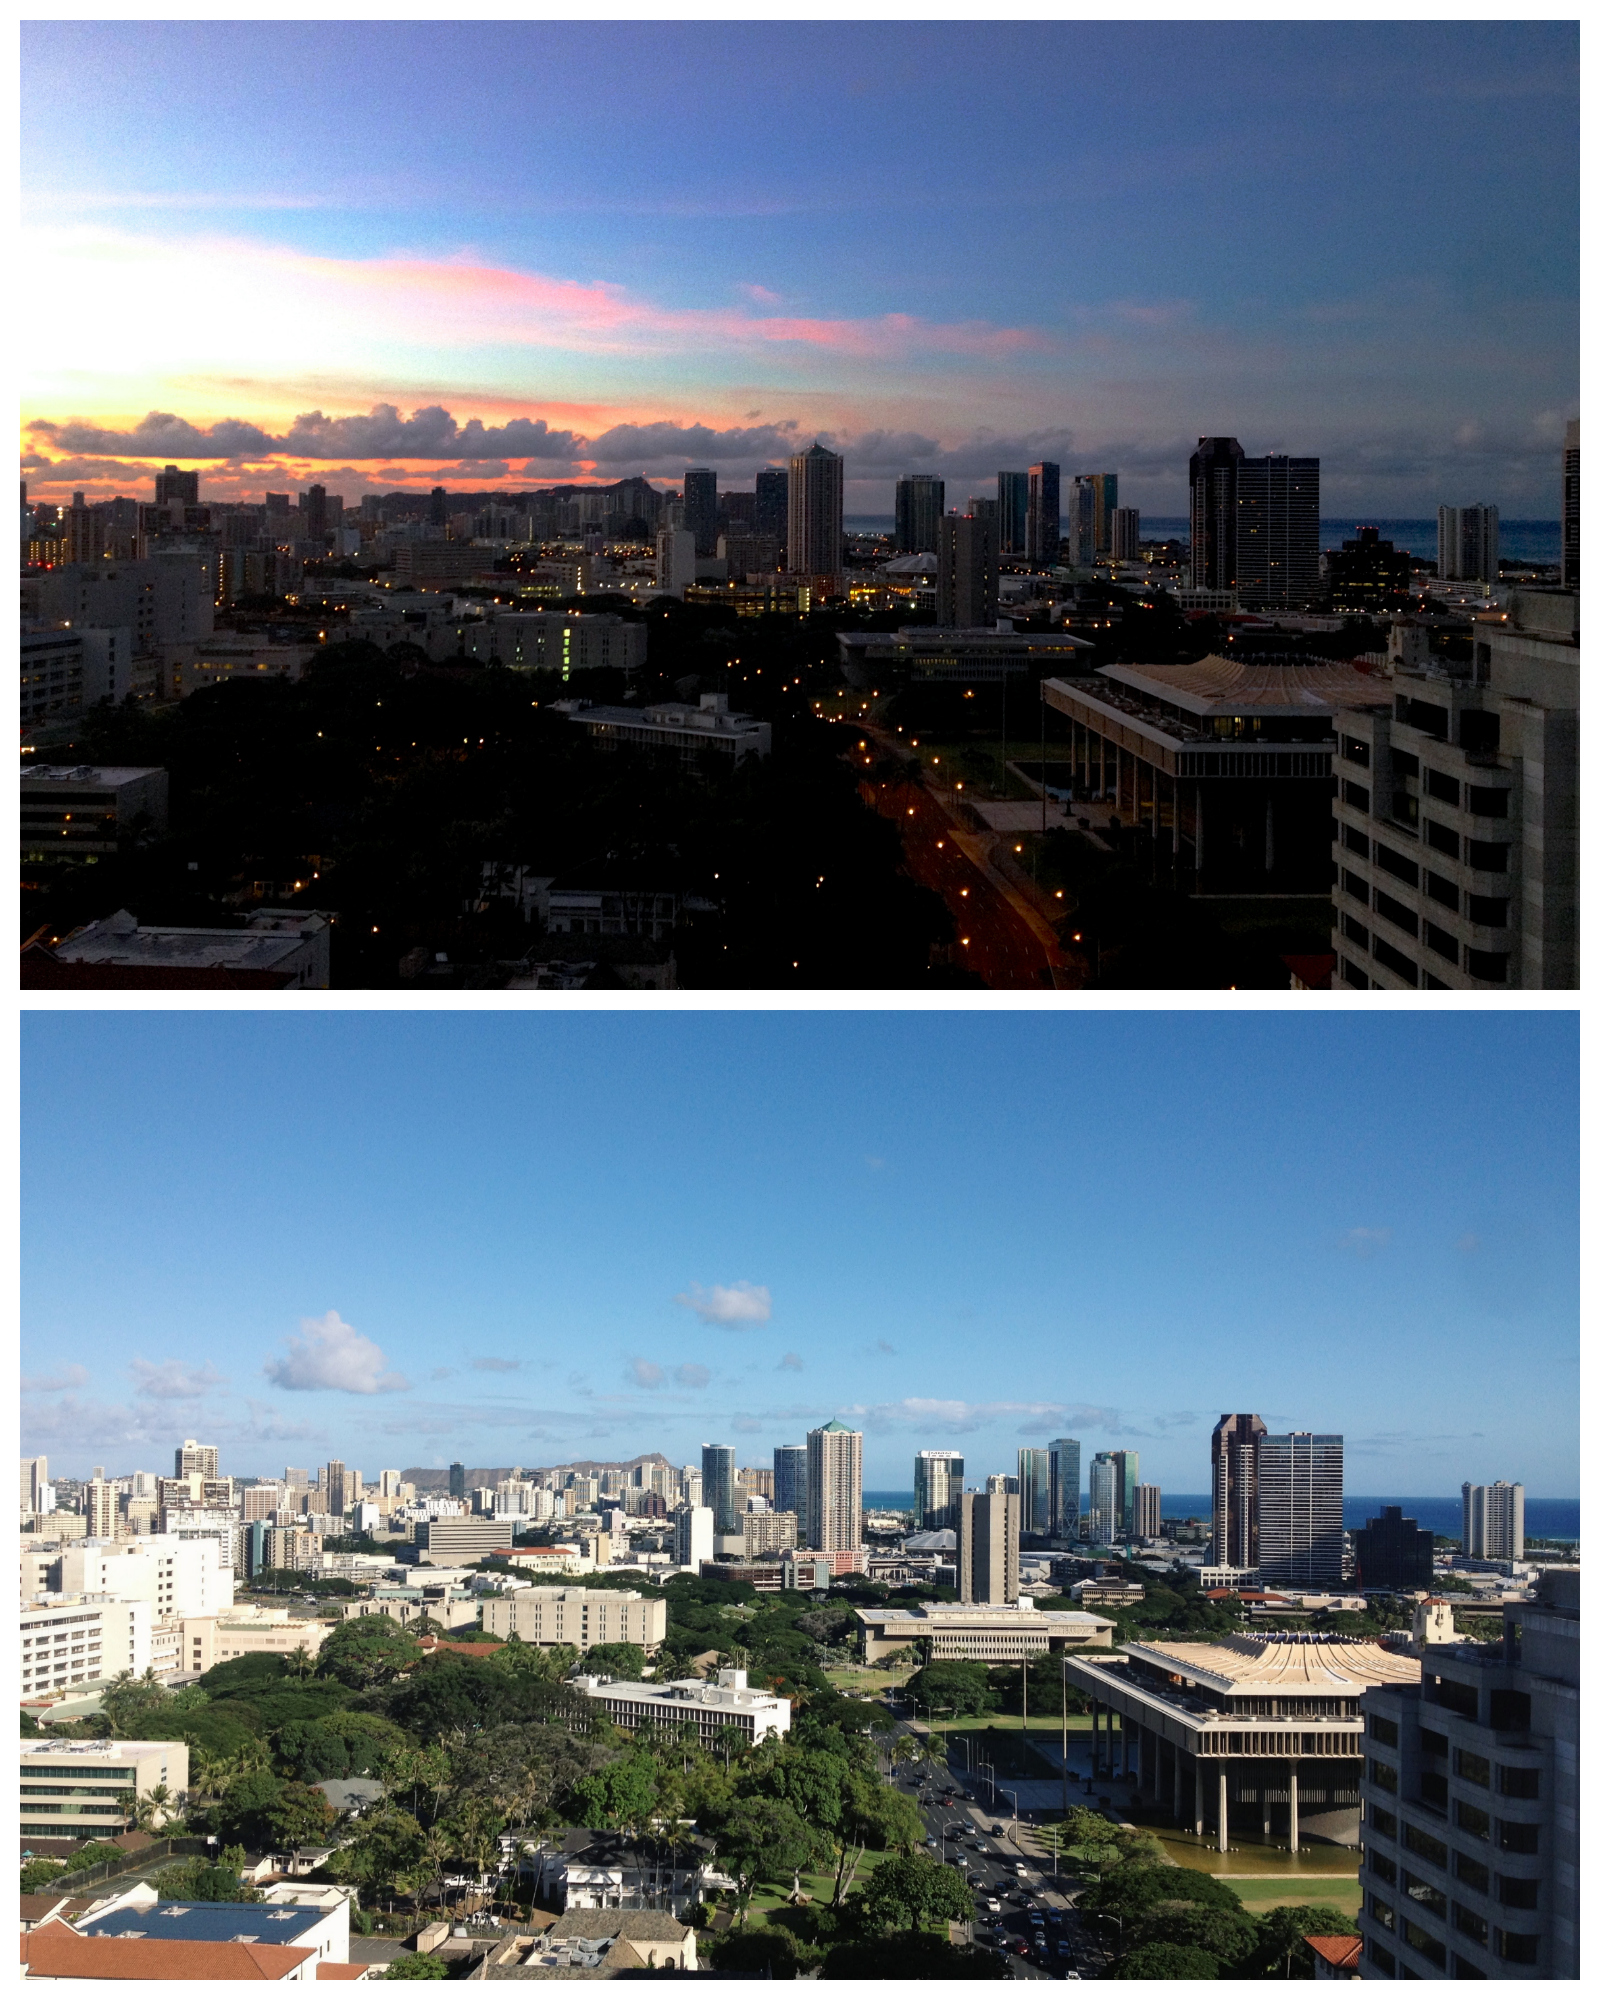 honolulu sunrise noon